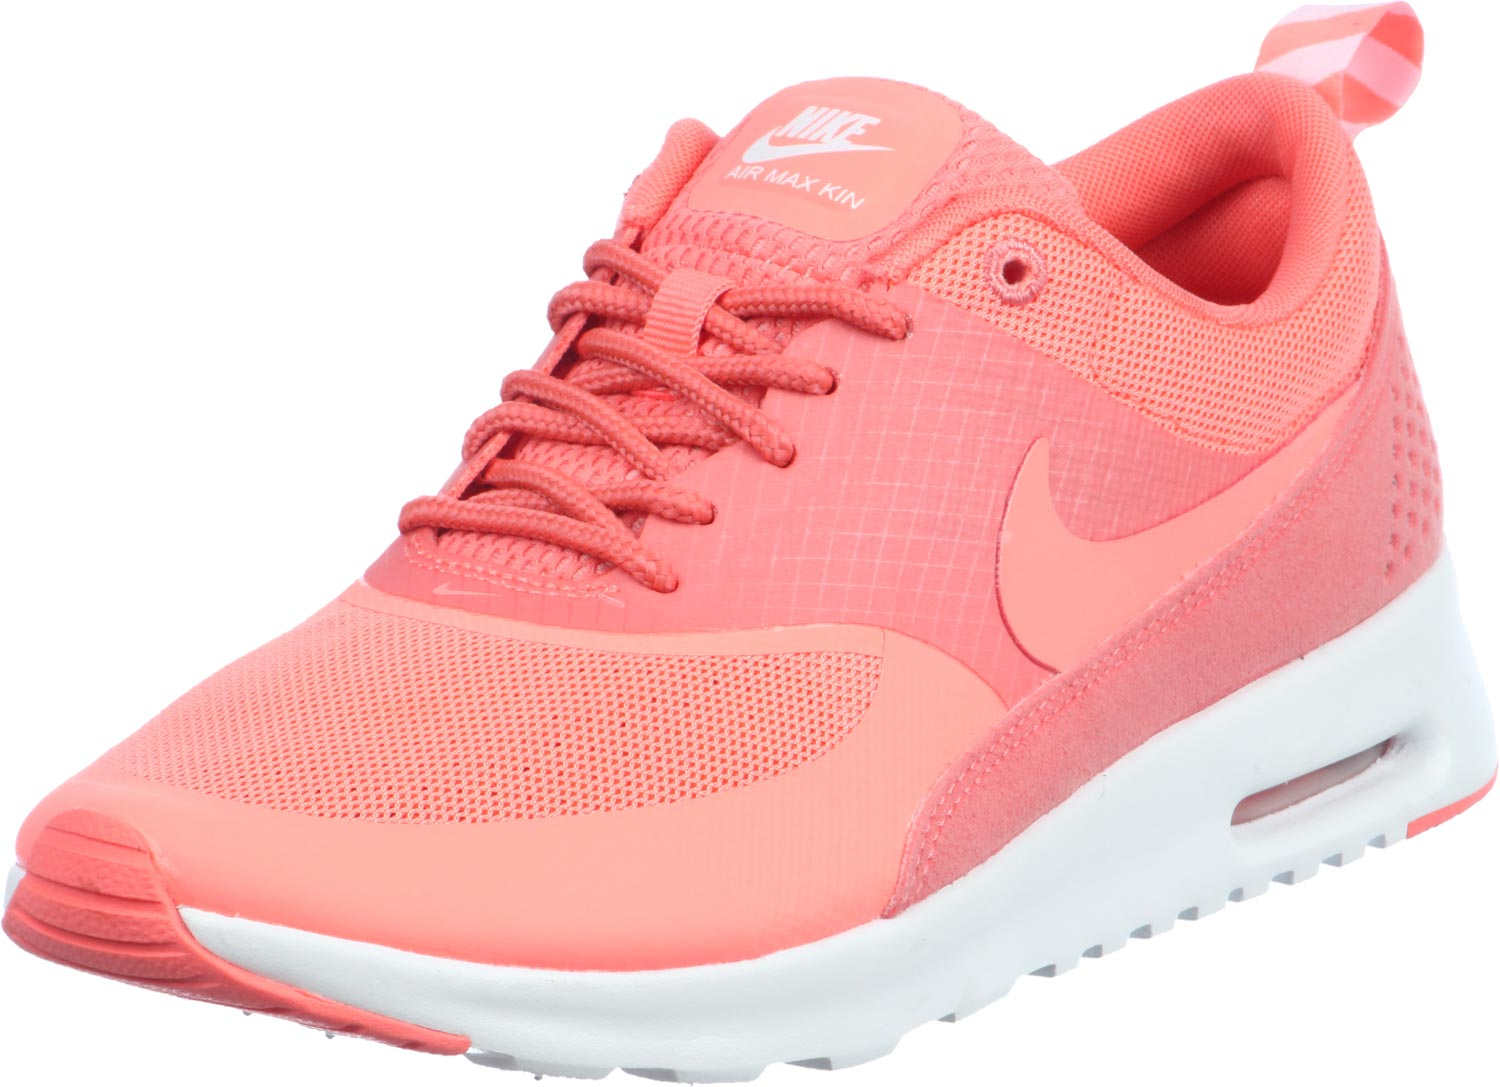 sports shoes 901d4 9cec3 Mode Nike Air Max Thea Femme Grossiste Jing378